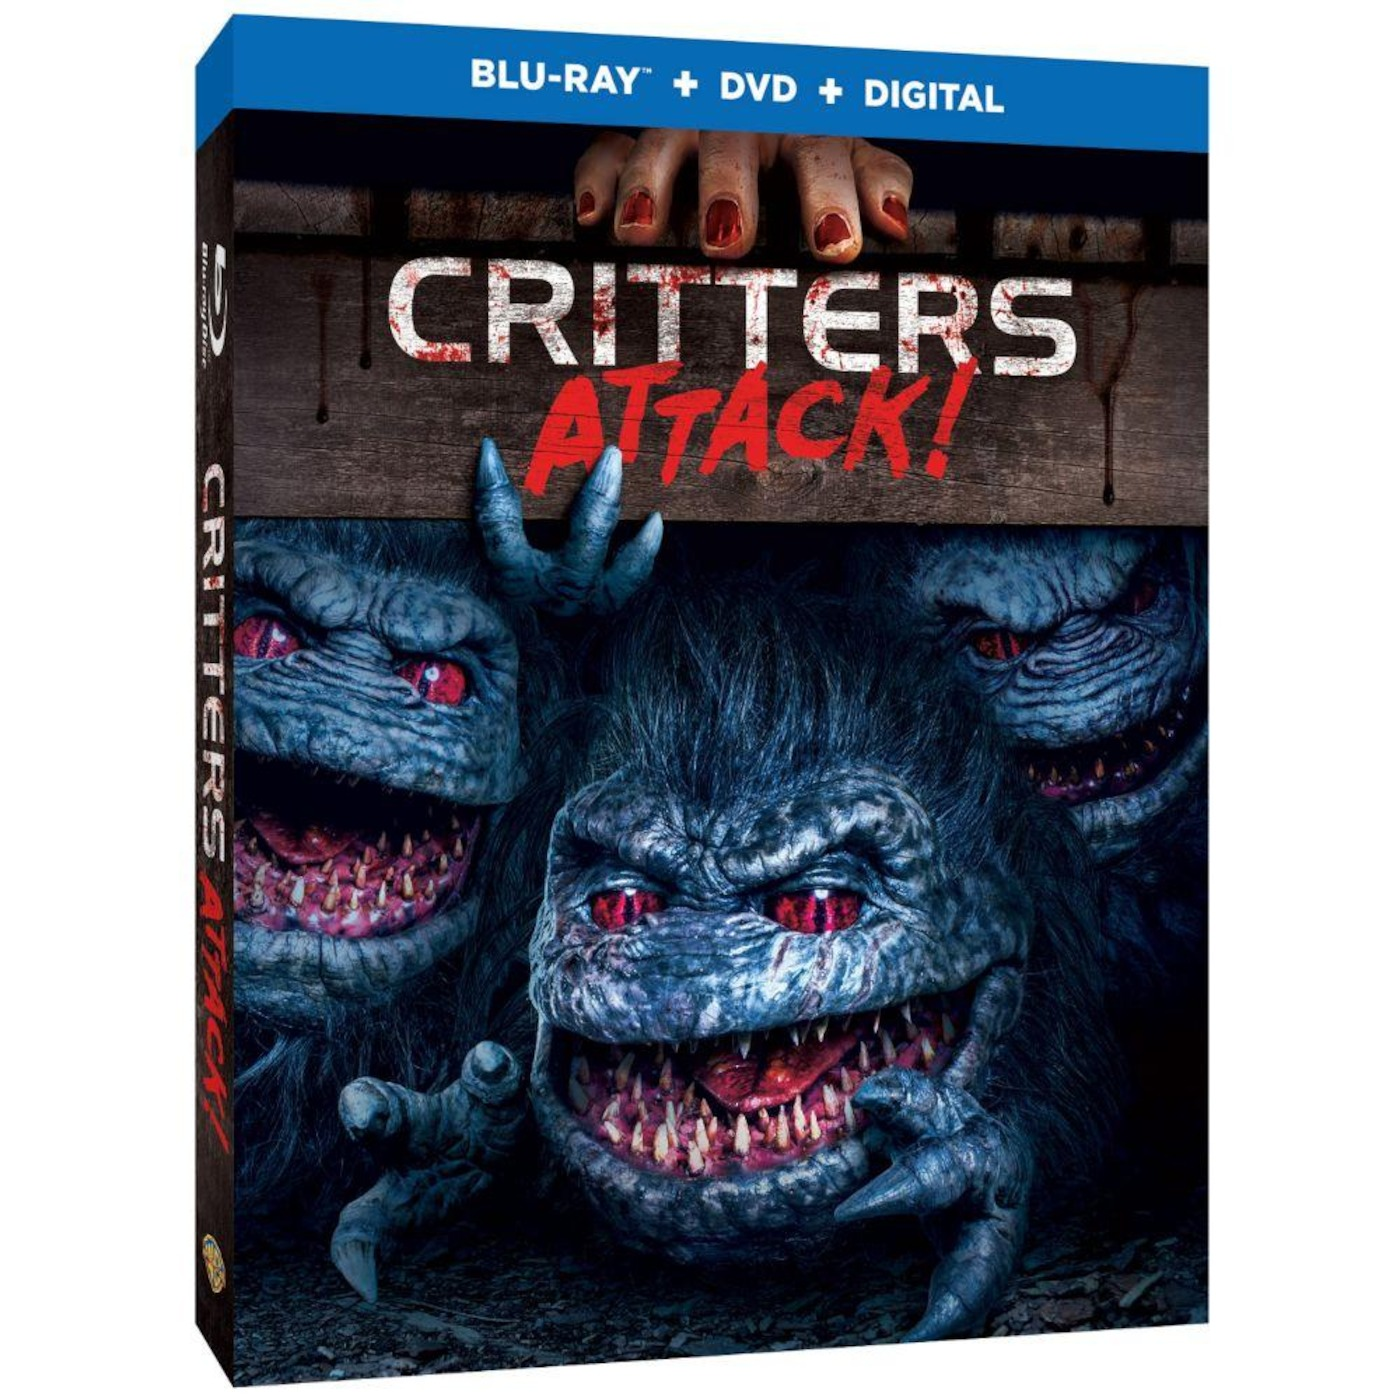 watch and download Critters Attack 2019 Popconflix free movie